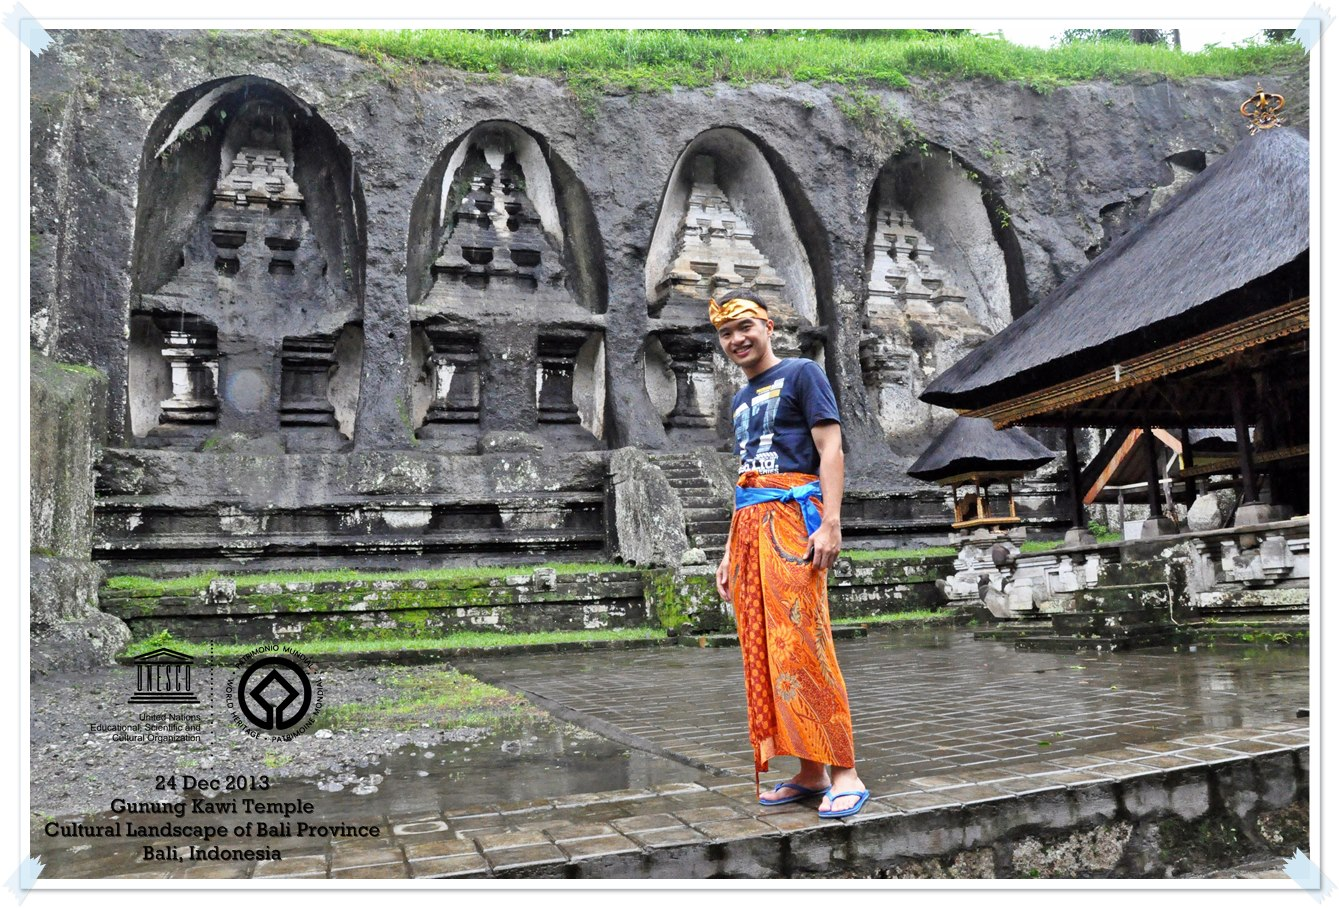 Gunung Kawi, Sacred Water Temple Cultural Landscape of Bali Province: the Subak System as a Manifestation of the Tri Hita Karana Philosophy - Indonesia Thomas shaw